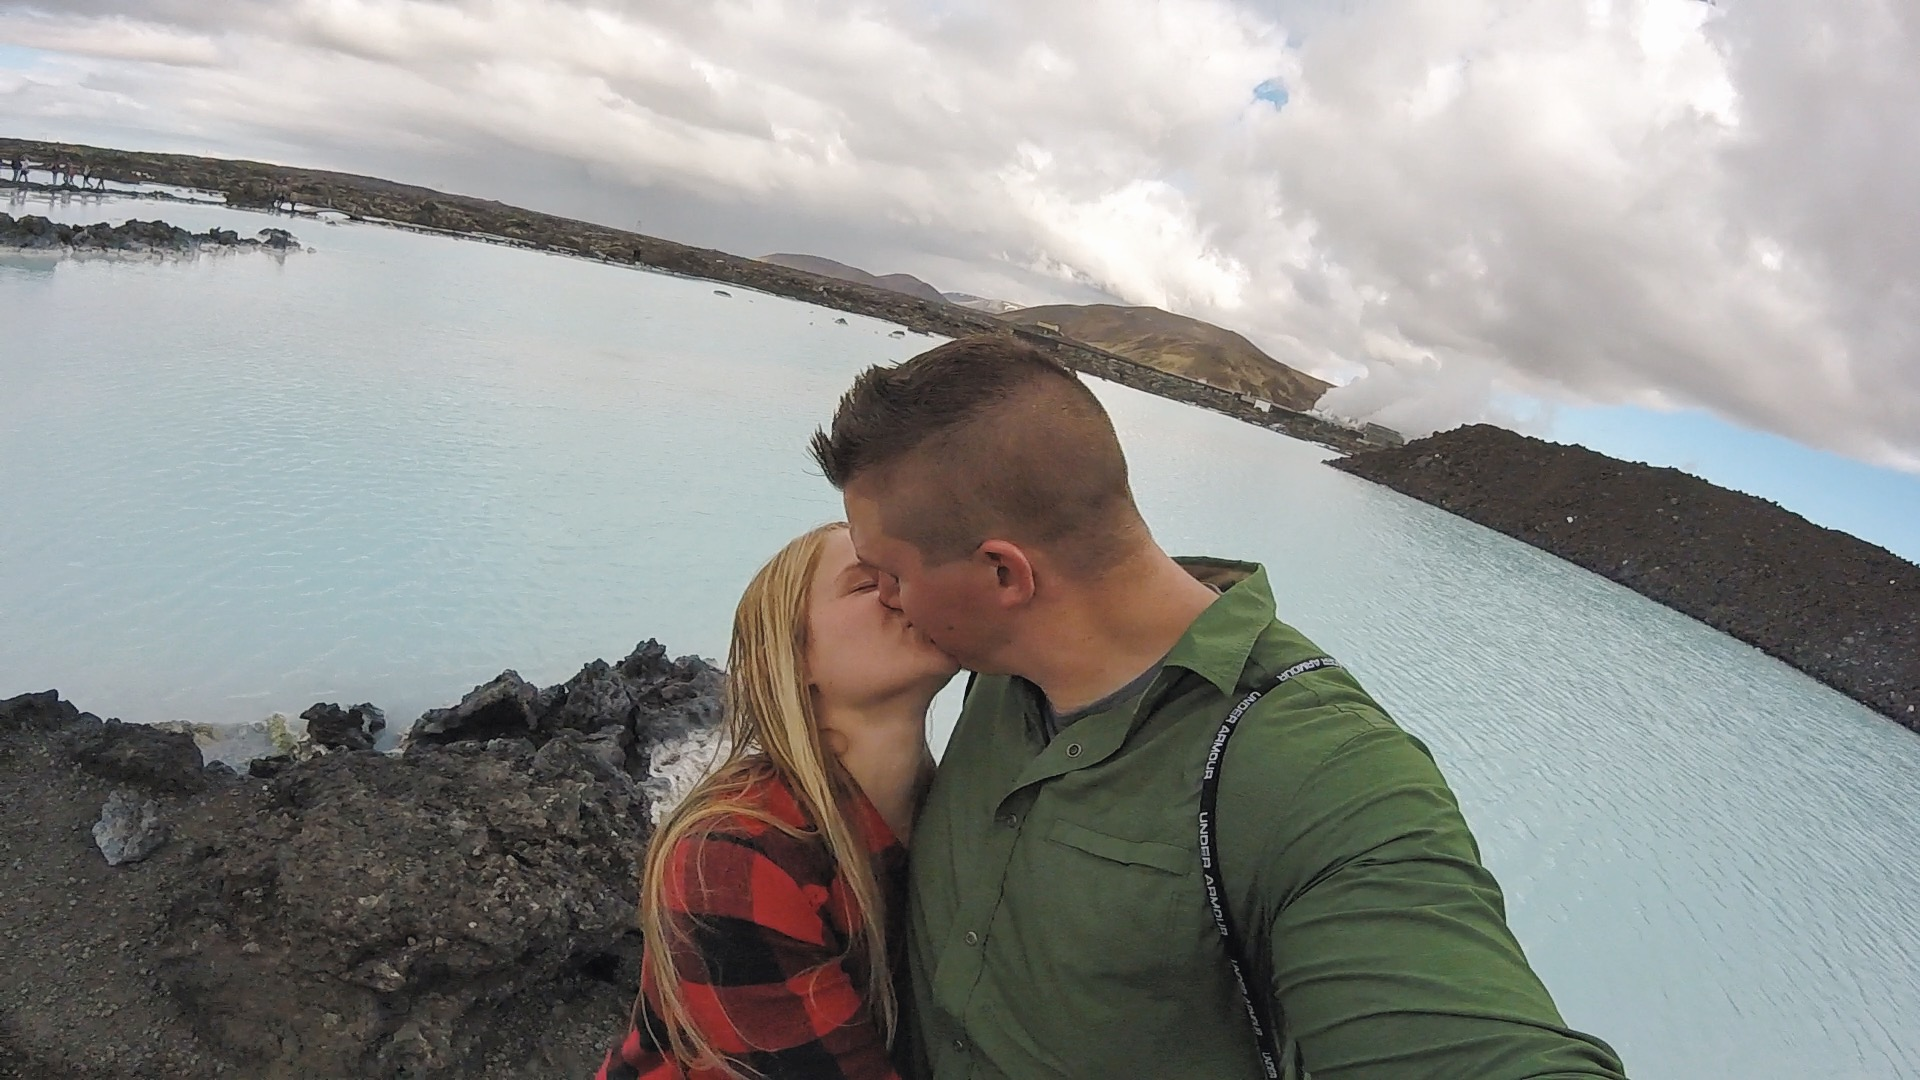 Newlywed Travels, First Anniversary in Iceland, Something New for I Do